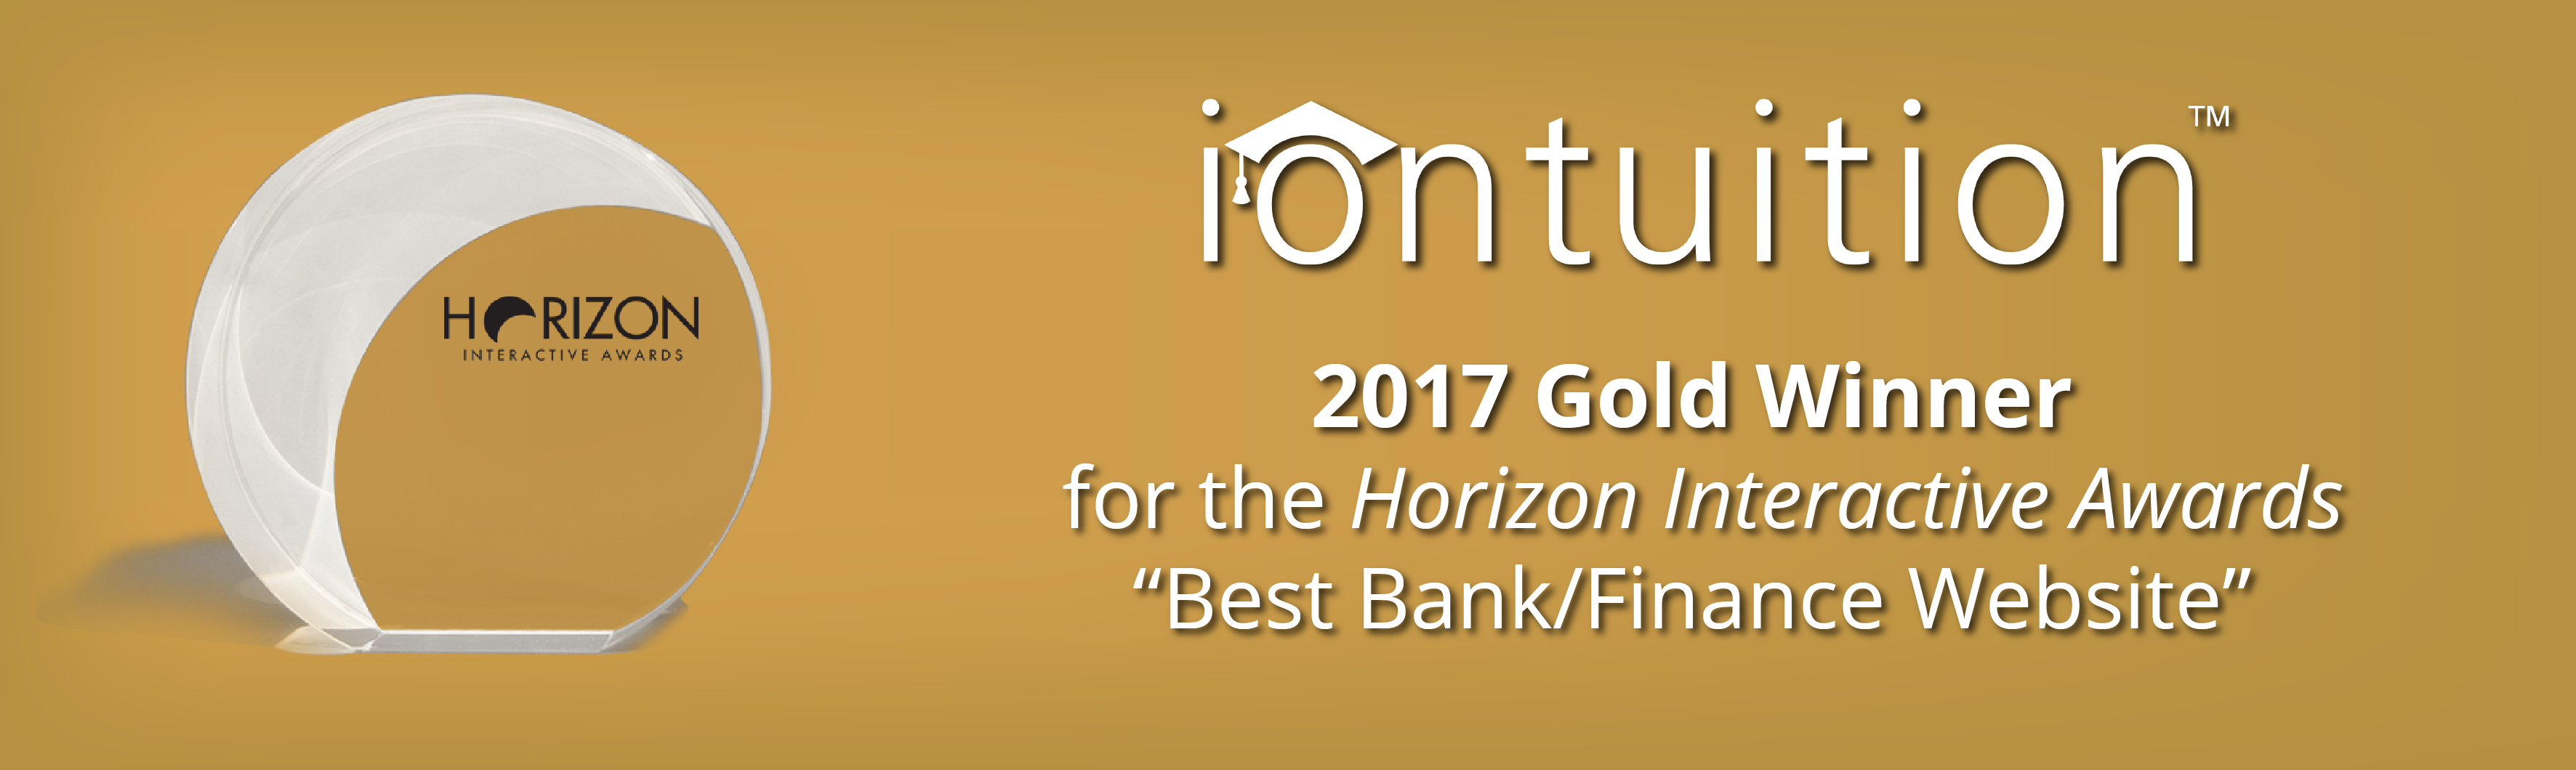 IonTuition: Gold Winner for Best Bank/Finance Website